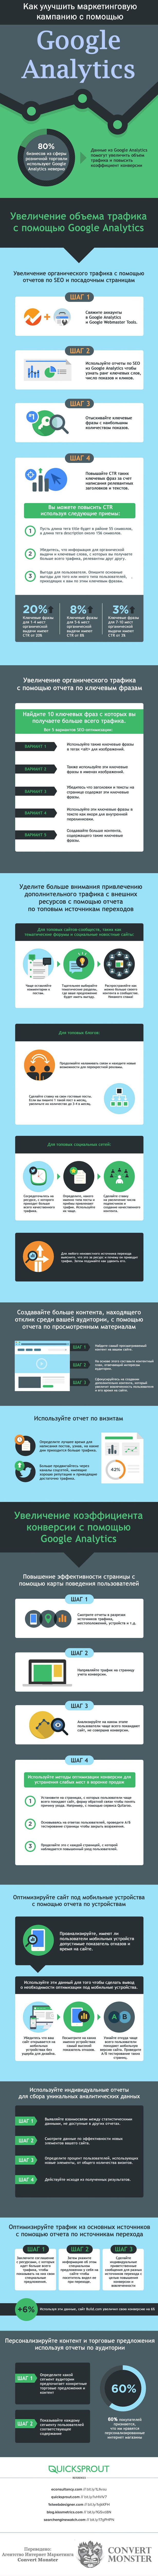 Как улучшить маркетинговую кампанию с помощью Google Analytics Инфографика про контент-маркетинг с Google Analytics